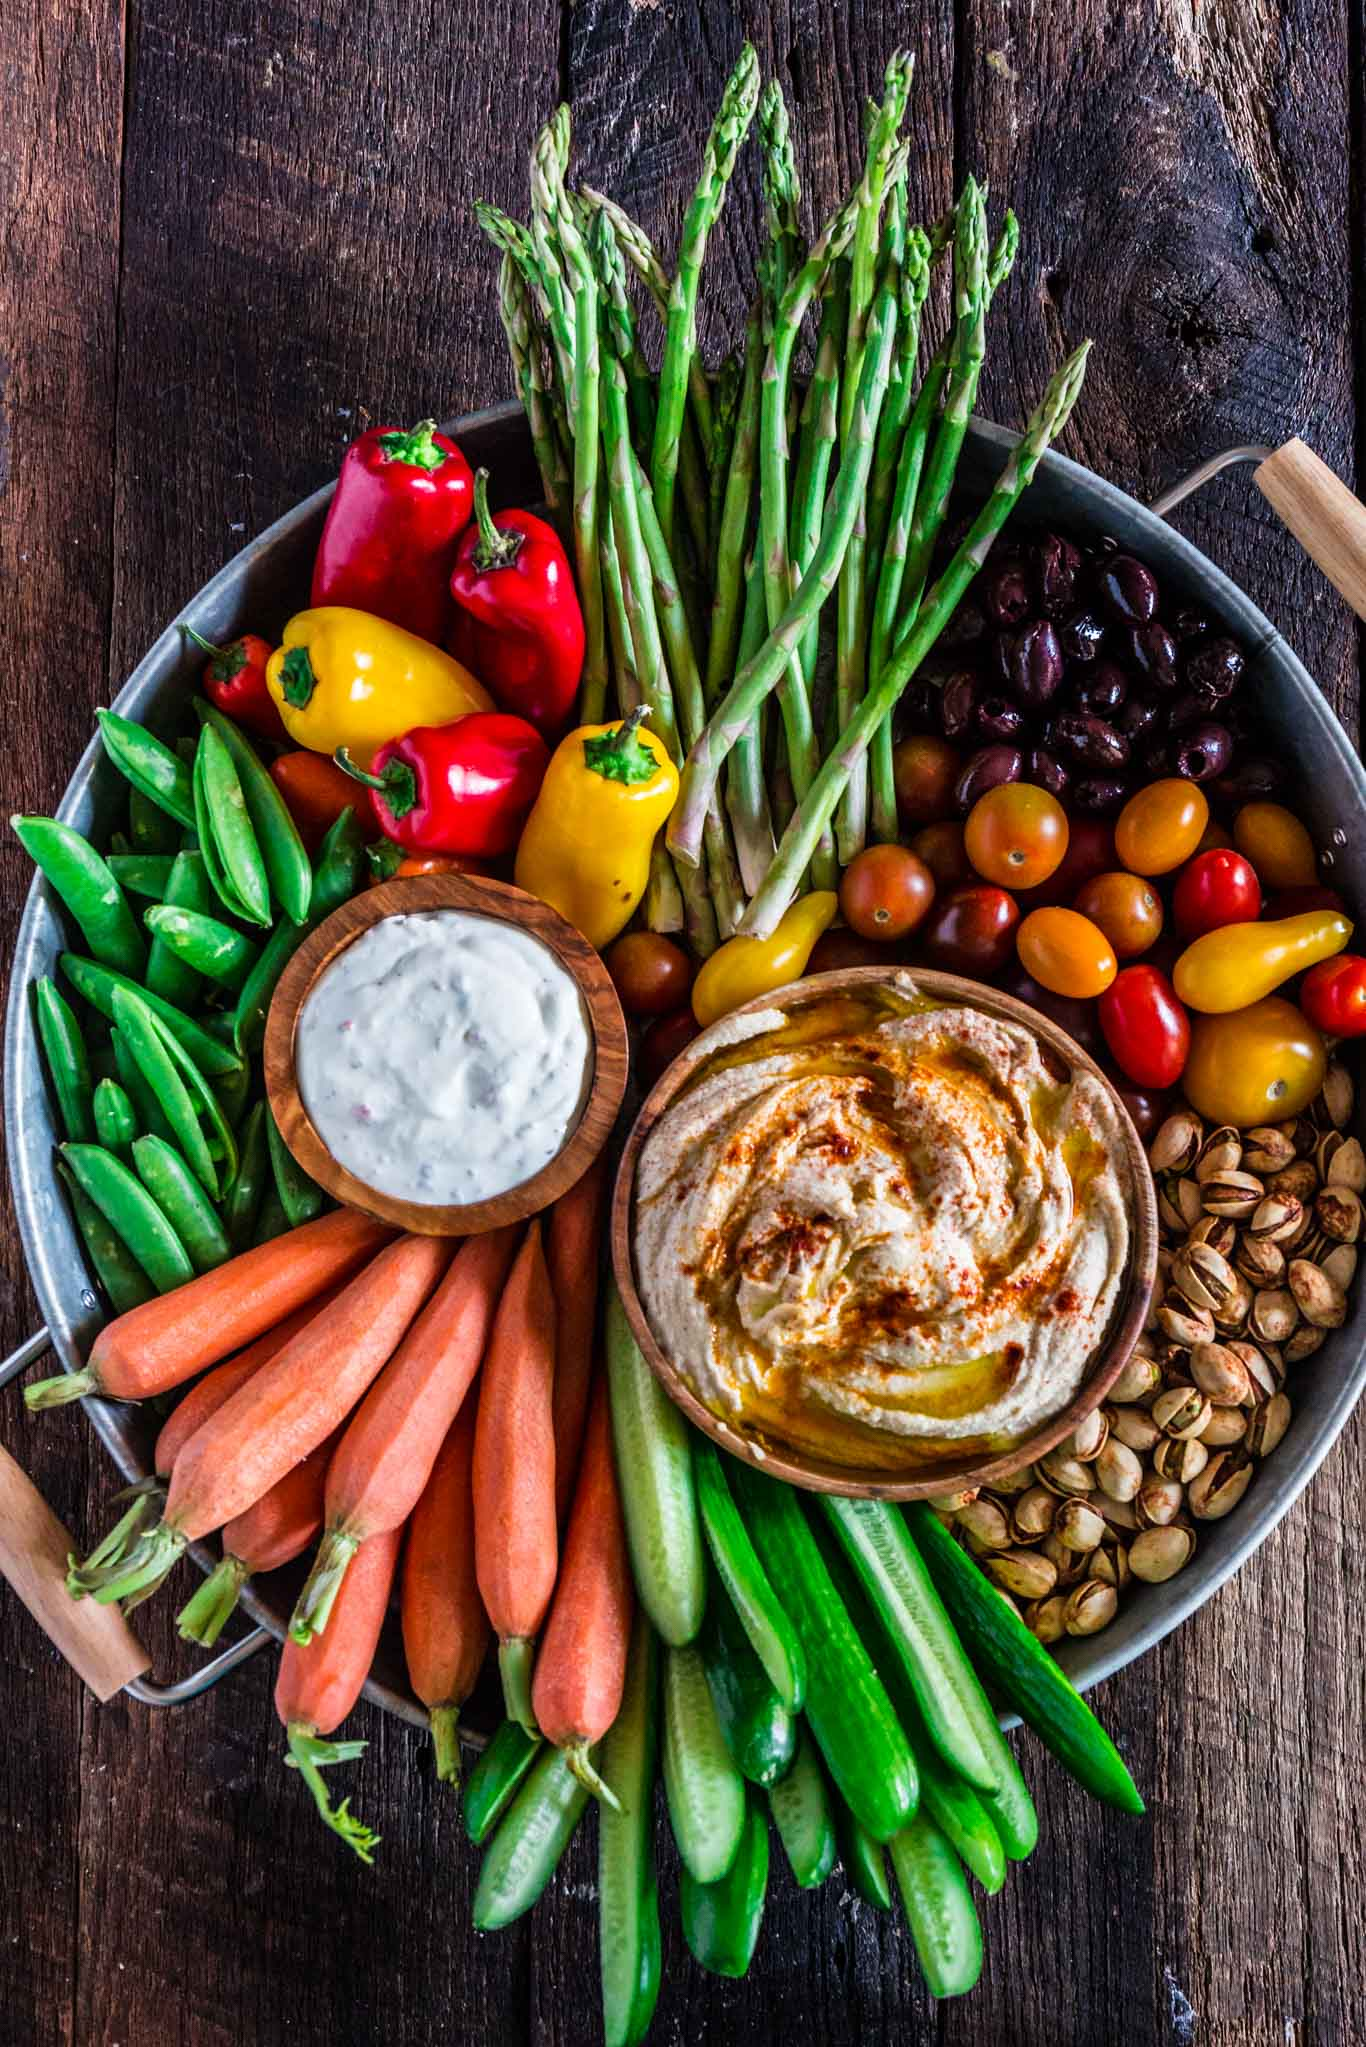 How to Assemble a Crudité Platter | www.oliviascuisine.com | Learn how to set up a Crudité Platter that your guests will actually enjoy, filled with fresh and seasonal veggies and a few delicious dips, olives and nuts. Follow this quick guide and I guarantee you will find even the pickiest of eaters hanging around this awesome vegetable tray! (Recipe and photos by @oliviascuisine)